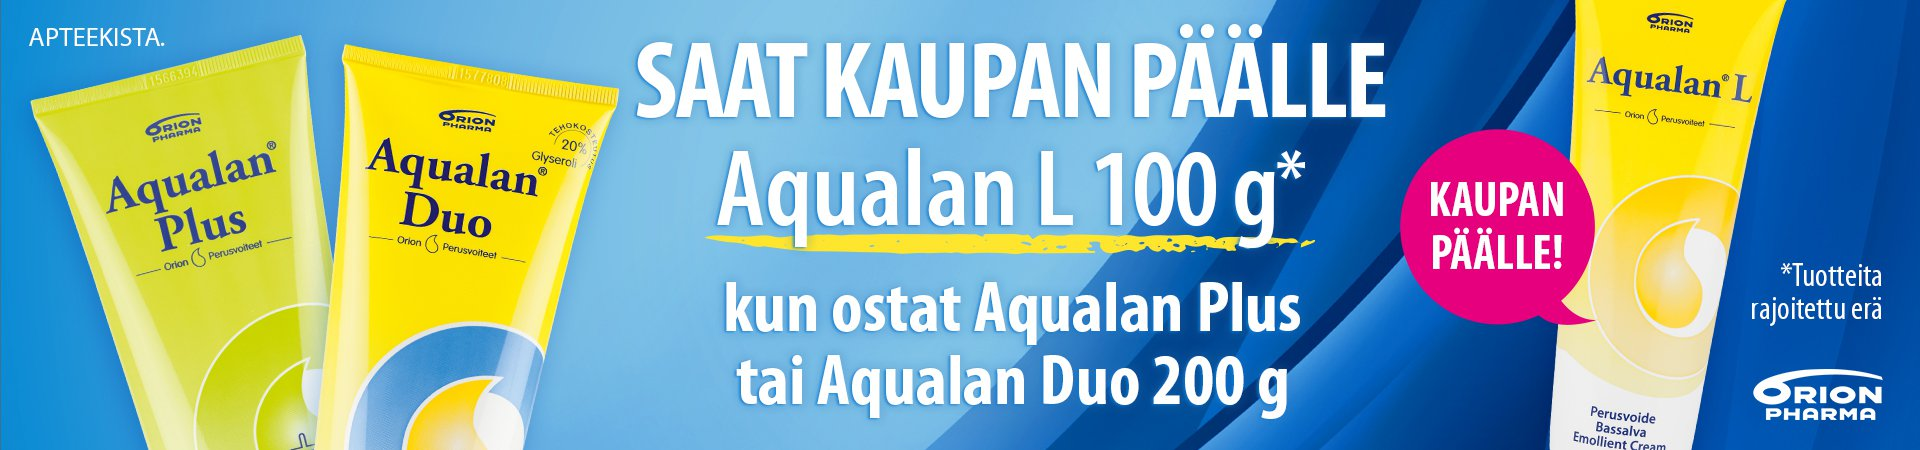 Aqualan duo ja plus